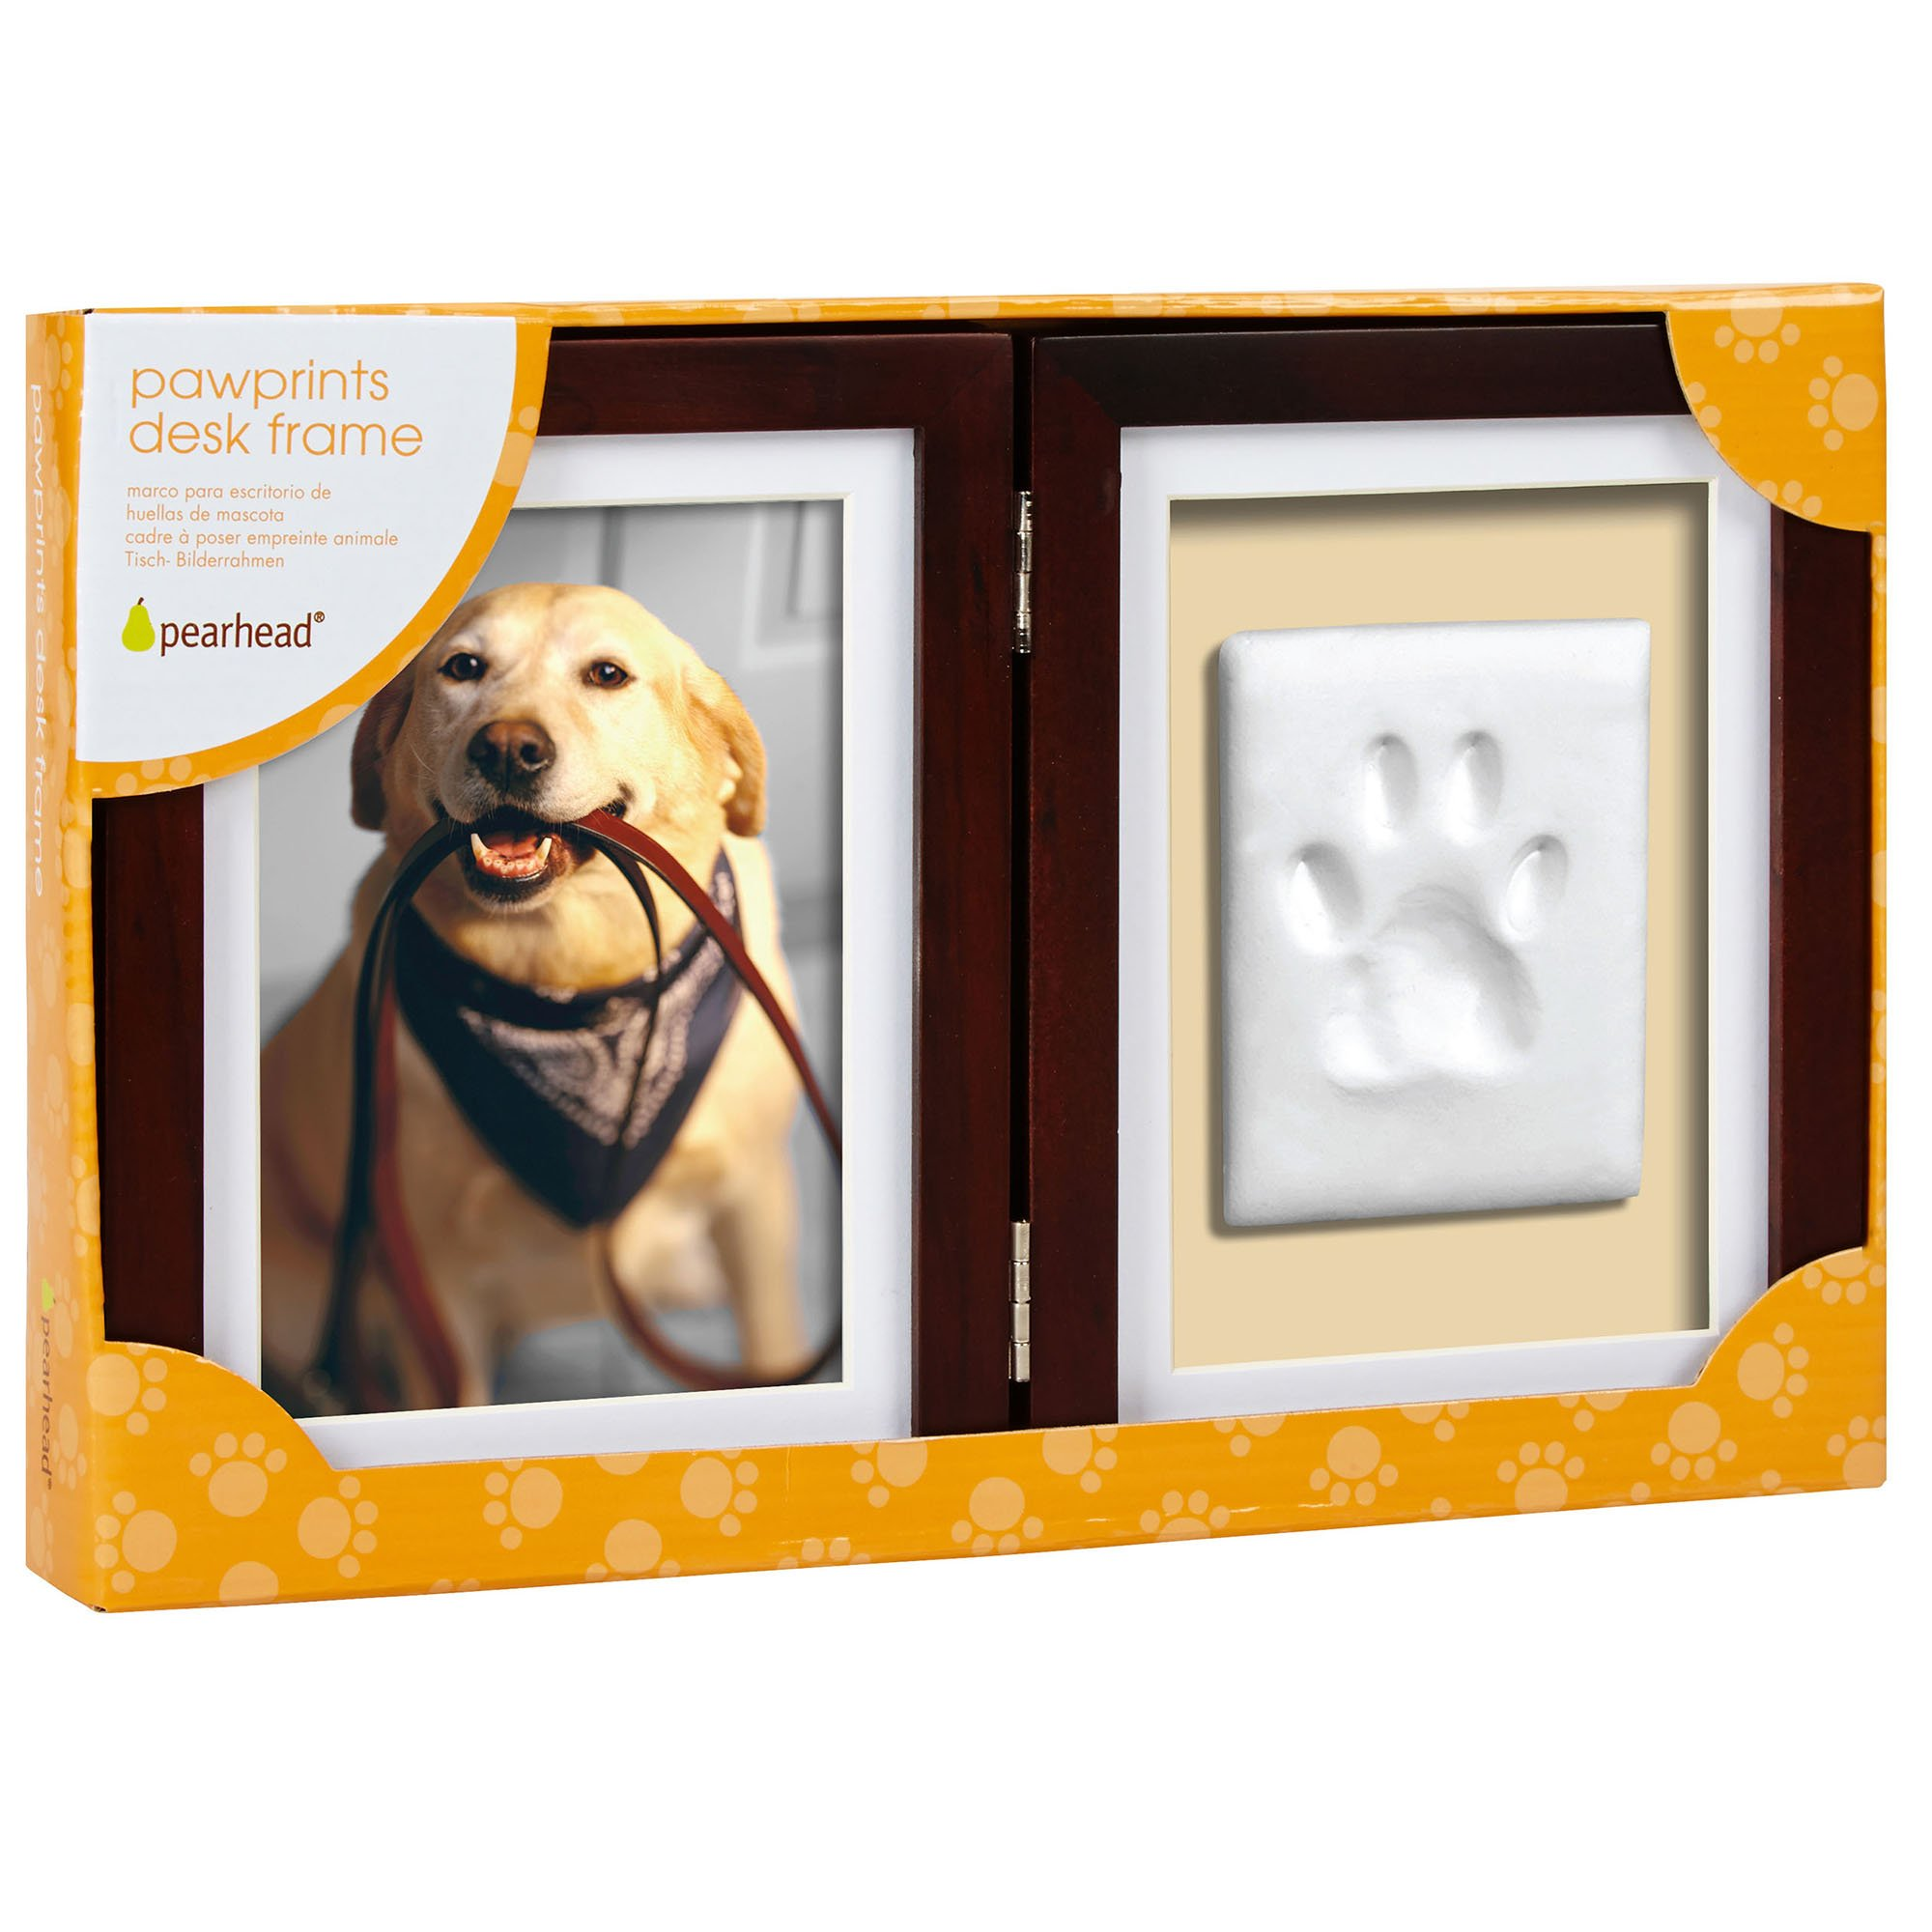 Pearhead pawprints desk picture frame and impression kit for dogs pearhead pawprints desk picture frame and impression kit for dogs or cats petco jeuxipadfo Images